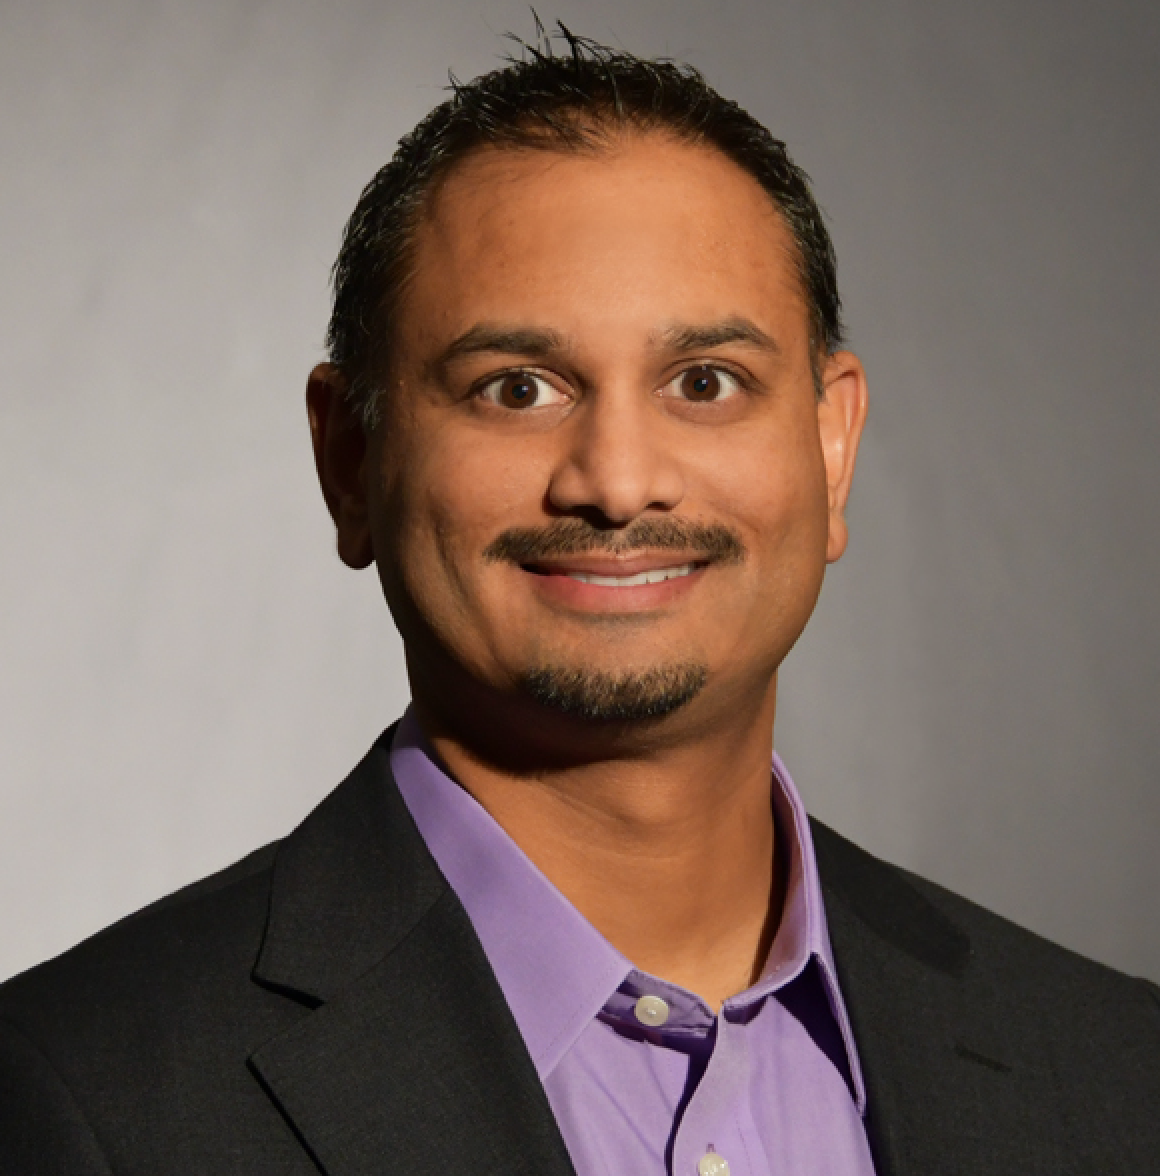 Tushar Patel is Chief Marketing Officer and head of global marketing for Cleo - a global leader in cloud integration technology.